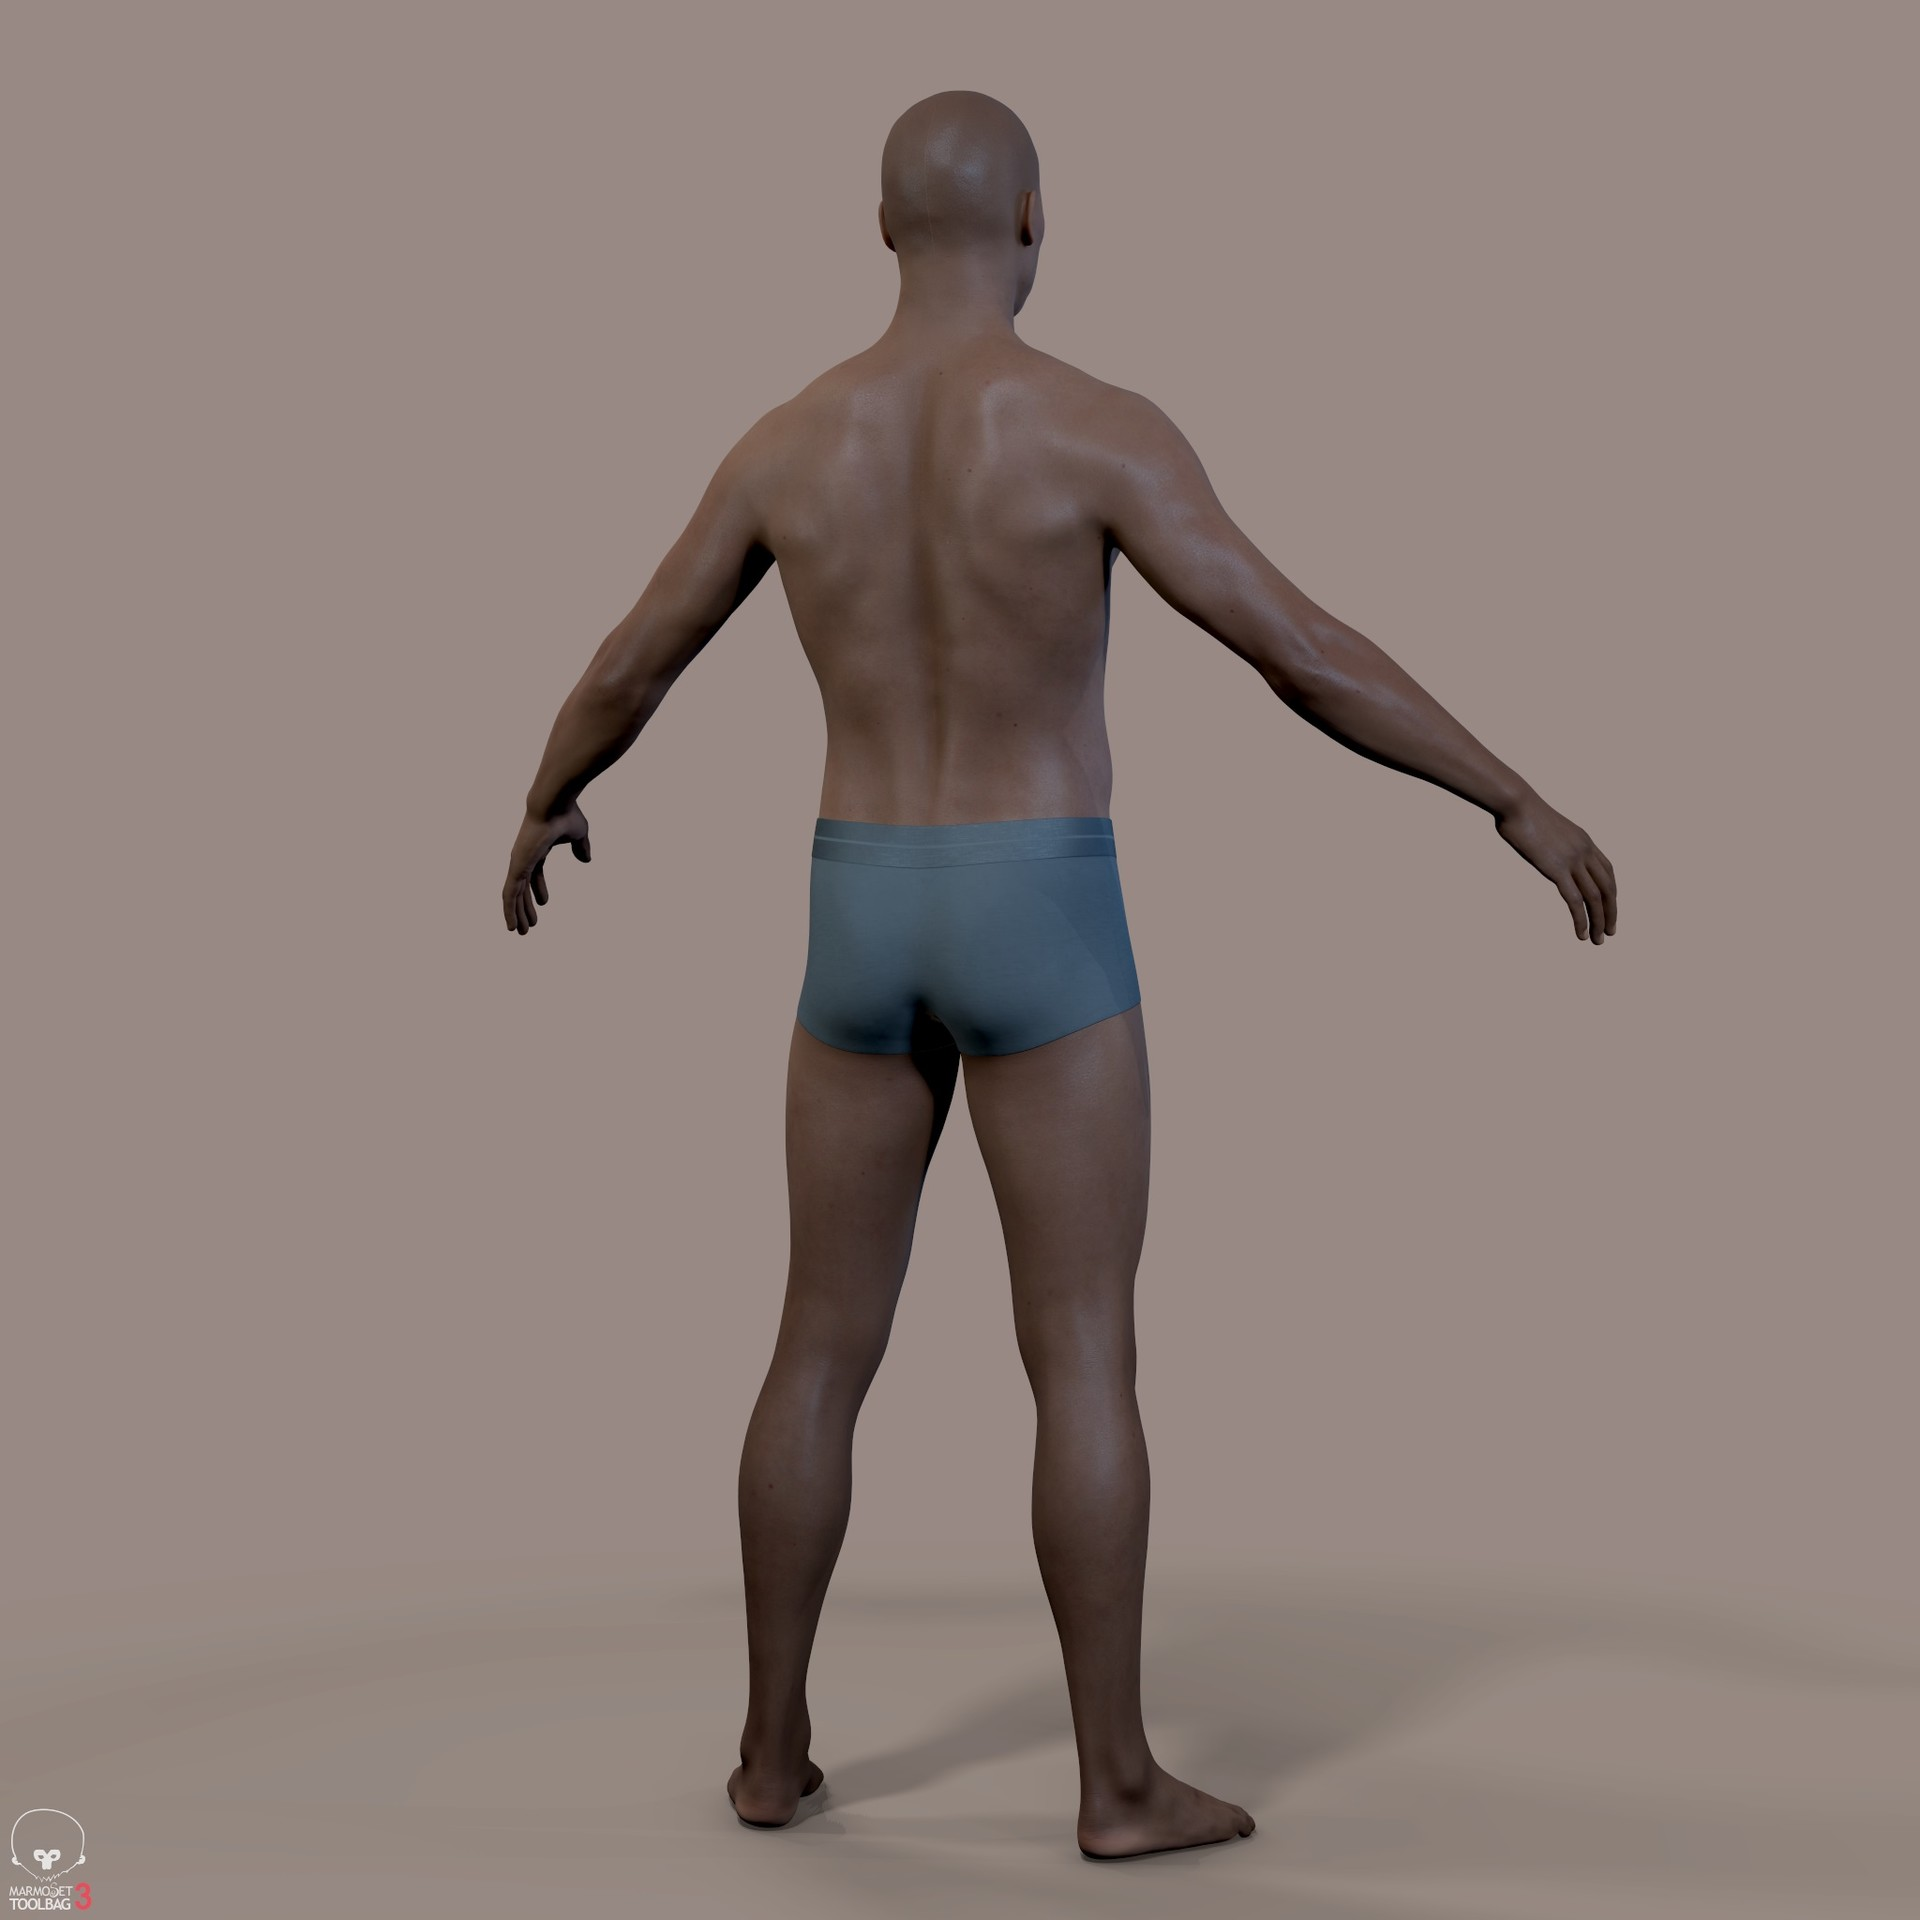 Alex lashko averageblackmalebody by alexlashko 00006